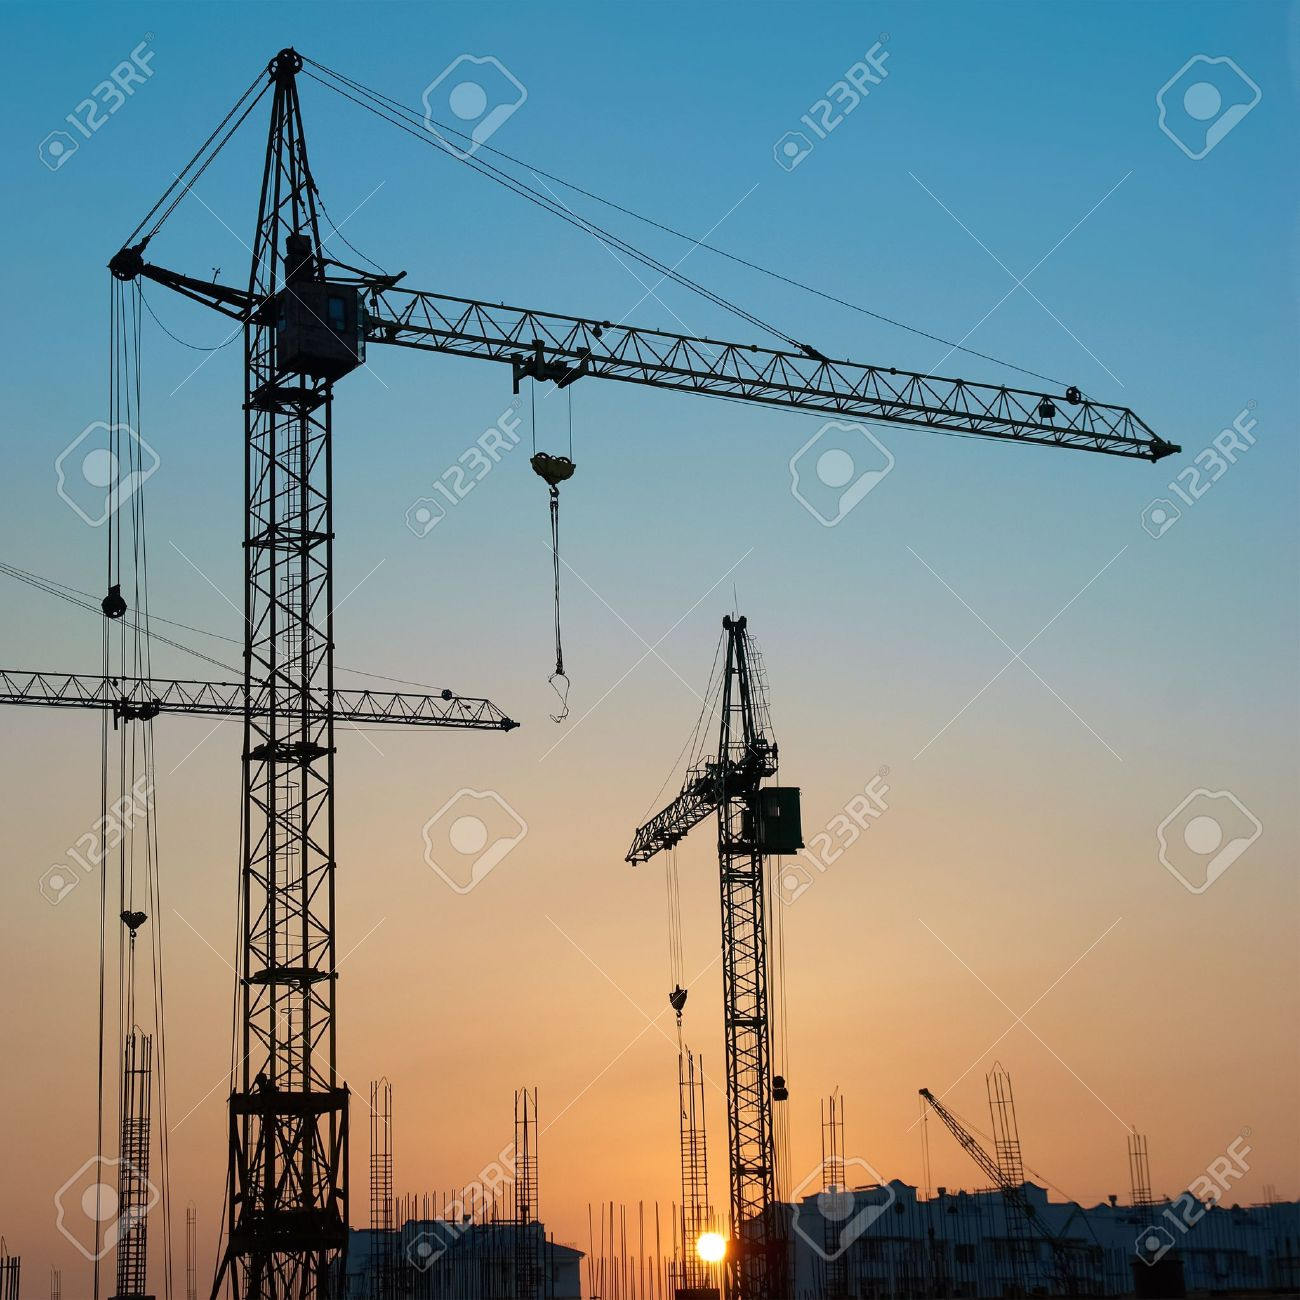 Industrial landscape with silhouettes of cranes on the sunset background Stock Photo - 16390630